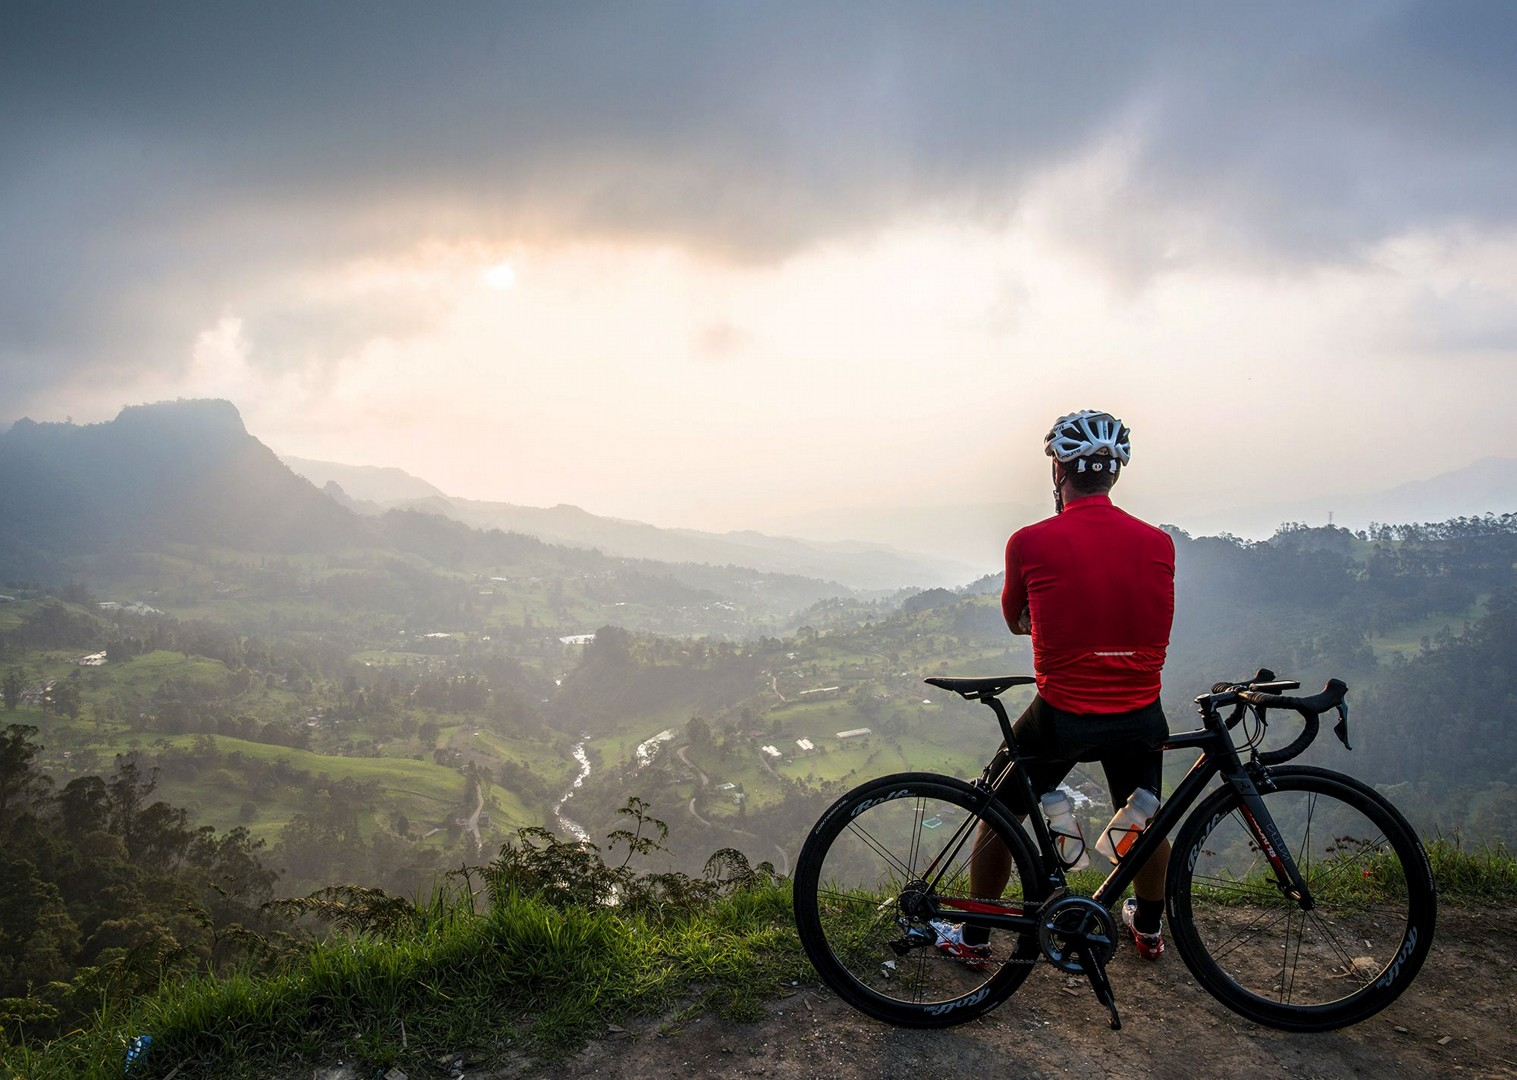 day_4_039.jpg - Colombia - Emerald Mountains - Road Cycling